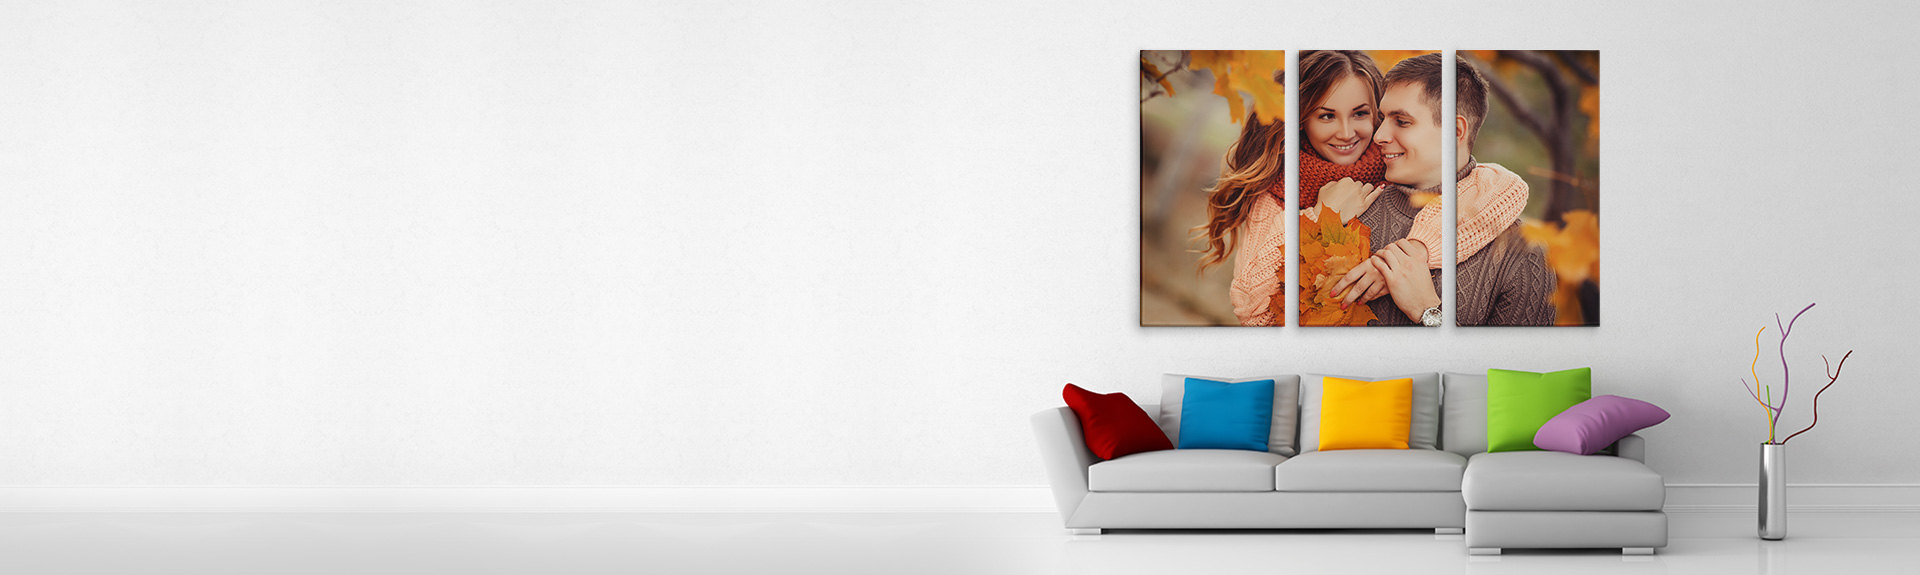 Printing Canvas Split Canvas Prints Custom Multi Panel Canvas Photo Prints